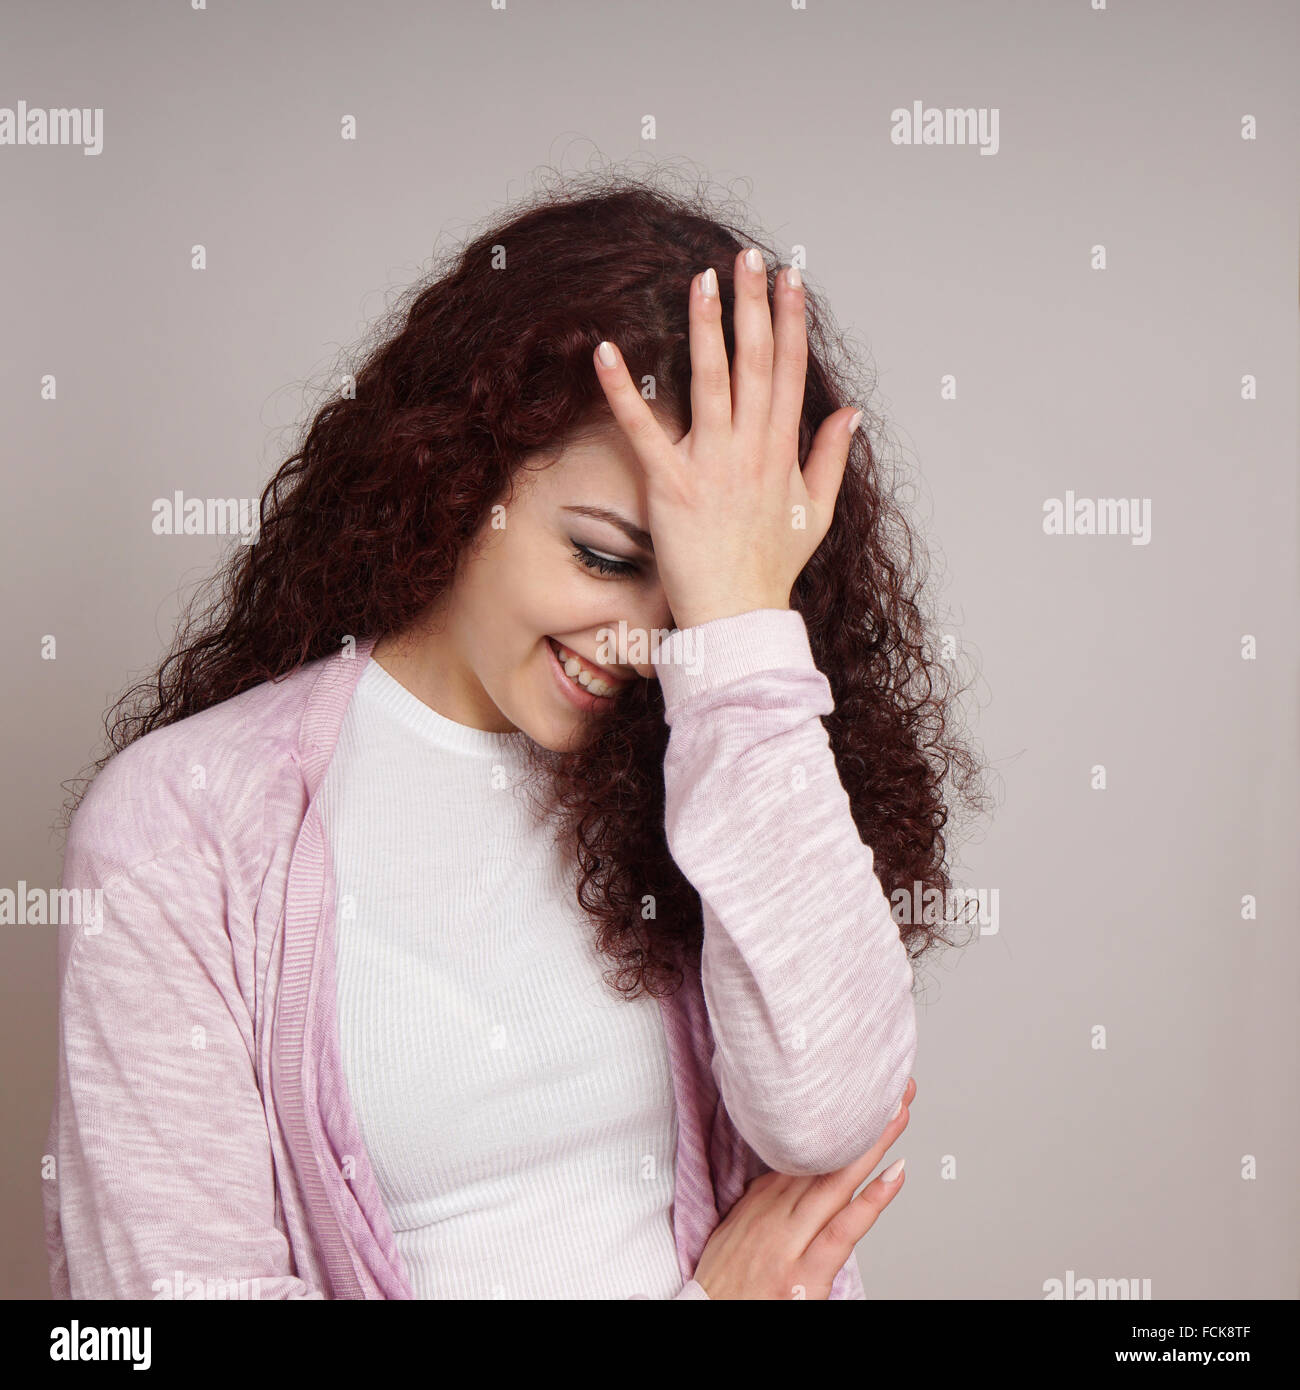 embarrassed young woman facepalm - Stock Image